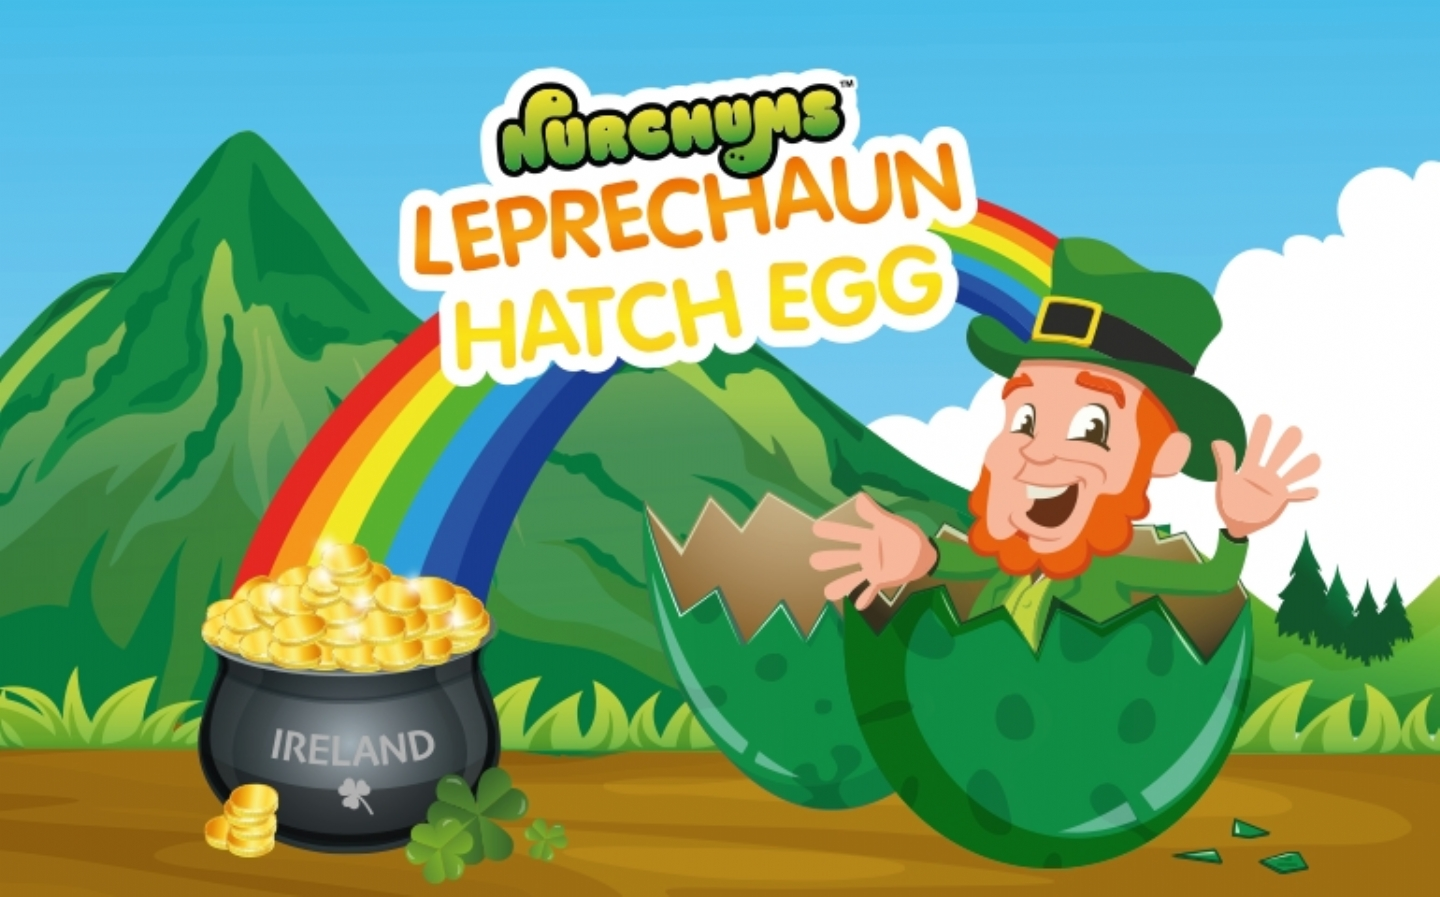 Sprinkle some luck of the Irish with Leprechaun Hatching Eggs